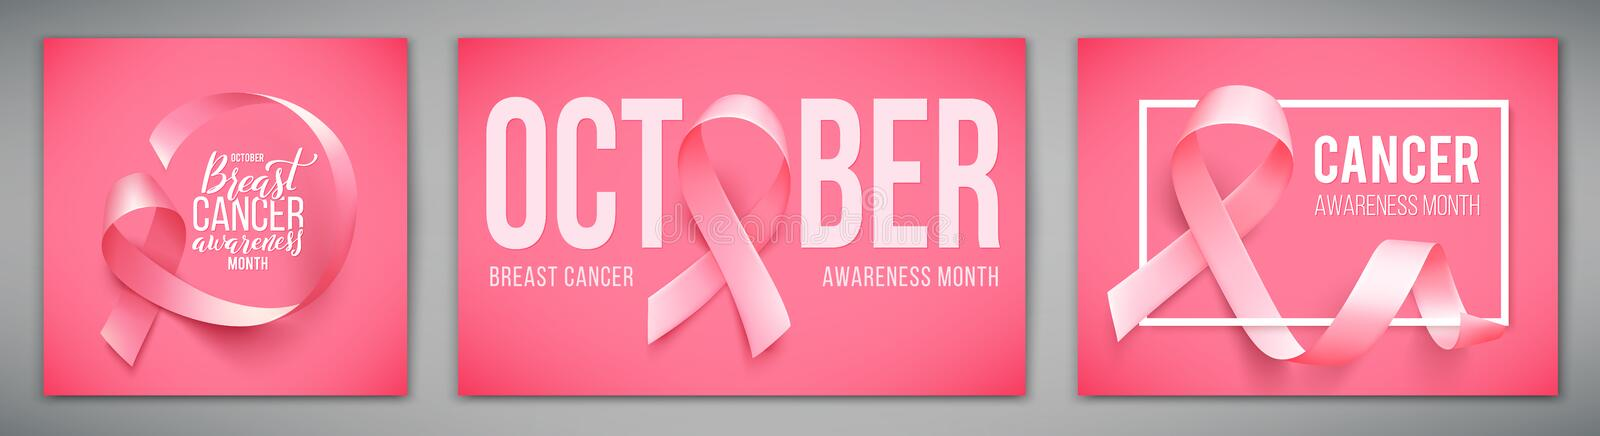 Set of posters with for breast cancer awareness month in october. Realistic pink ribbon symbol. Vector illustration. royalty free illustration